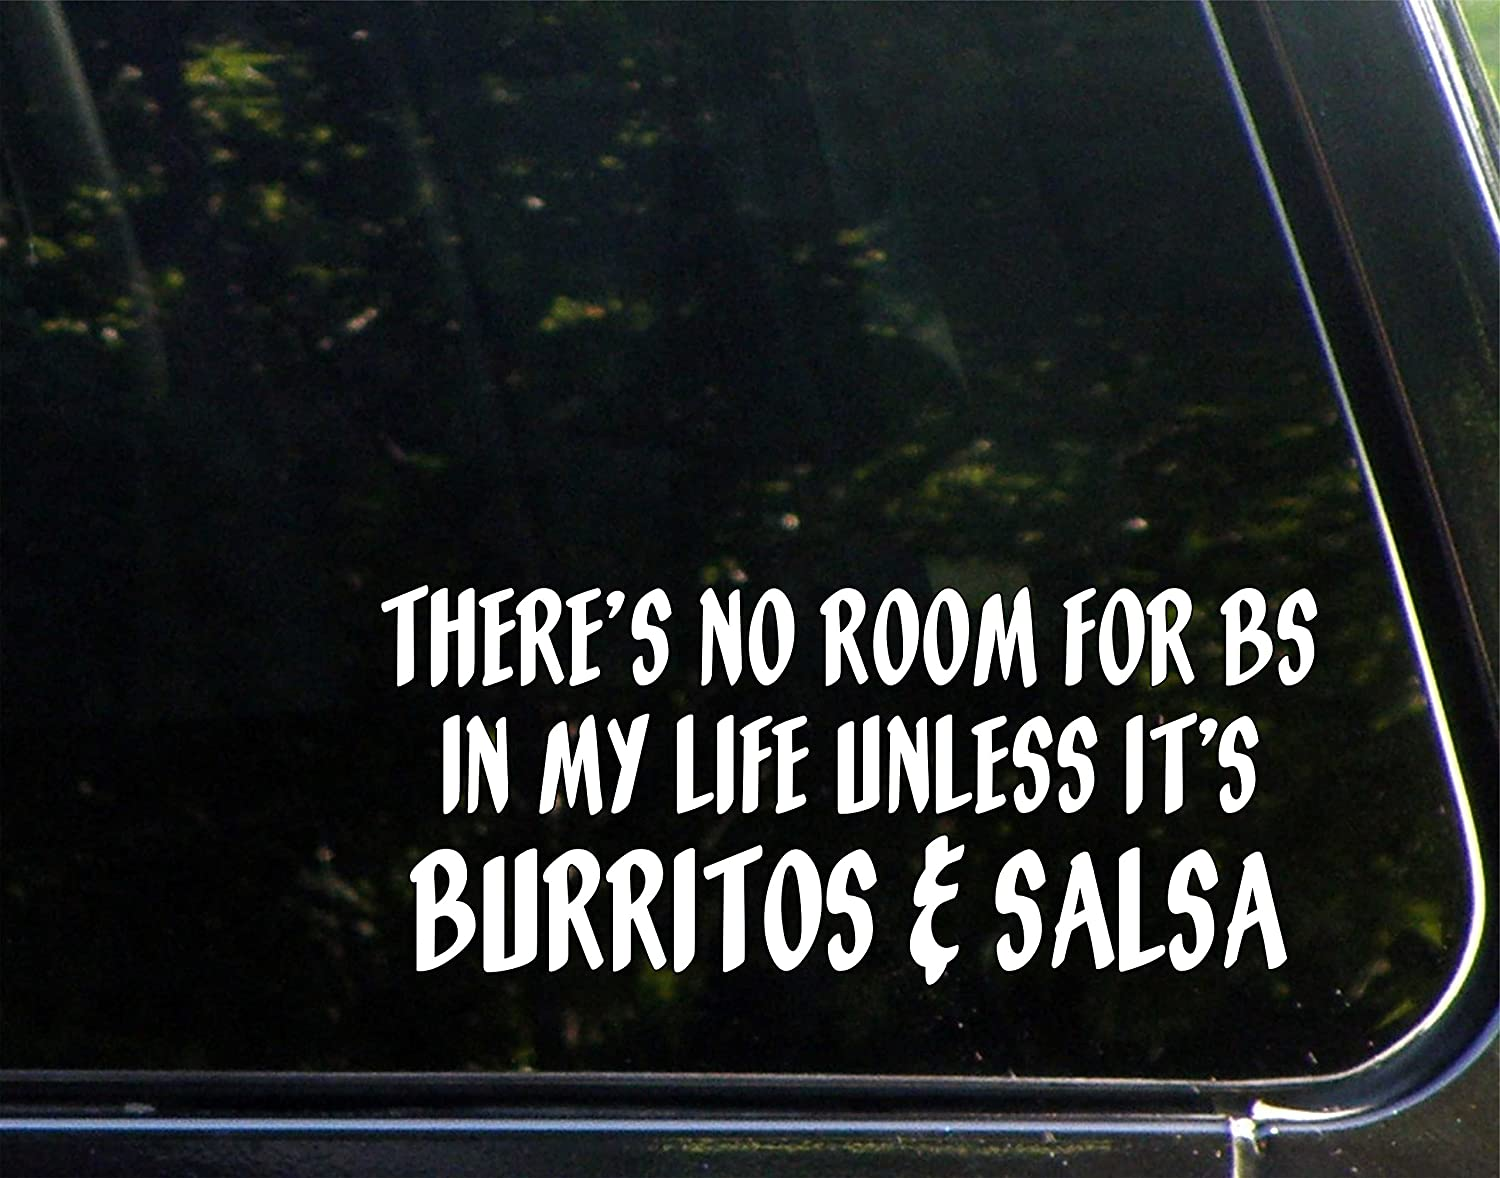 There is No Room for BS in My Life Unless It's Burritos & Salsa - 8-3/4